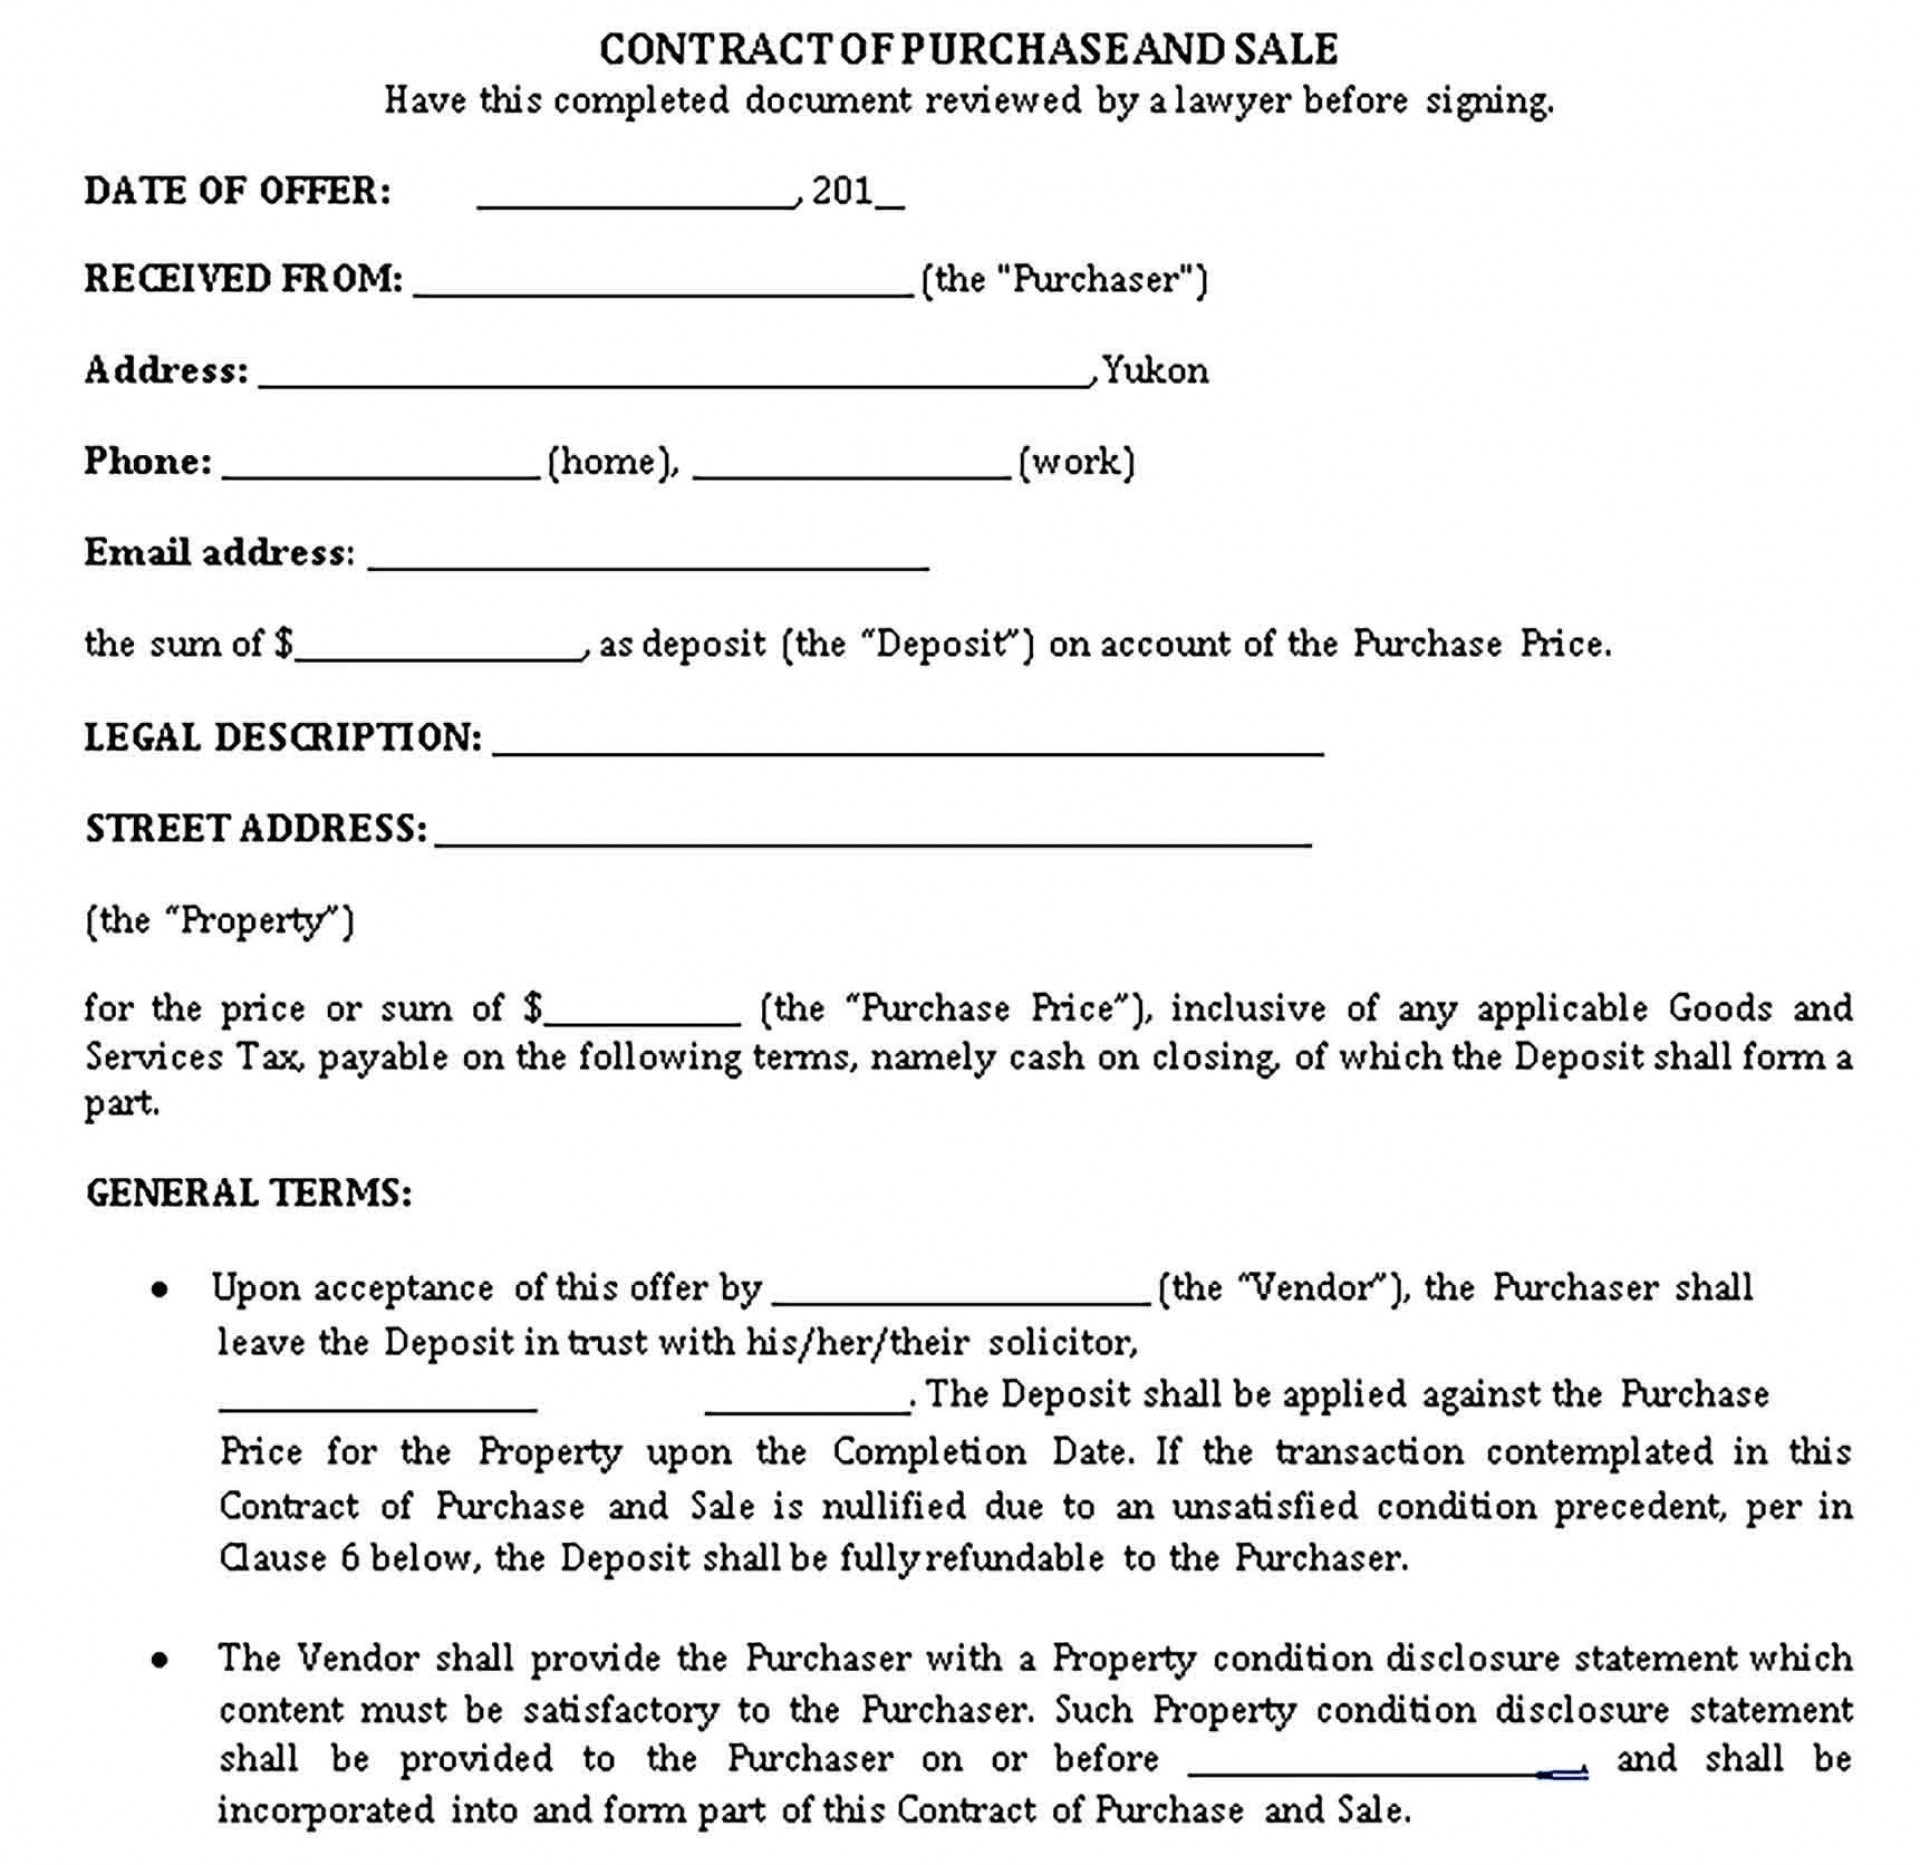 002 Staggering Home Purchase Contract Template Highest Quality  Virginia Form Lease To Commercial Property1920